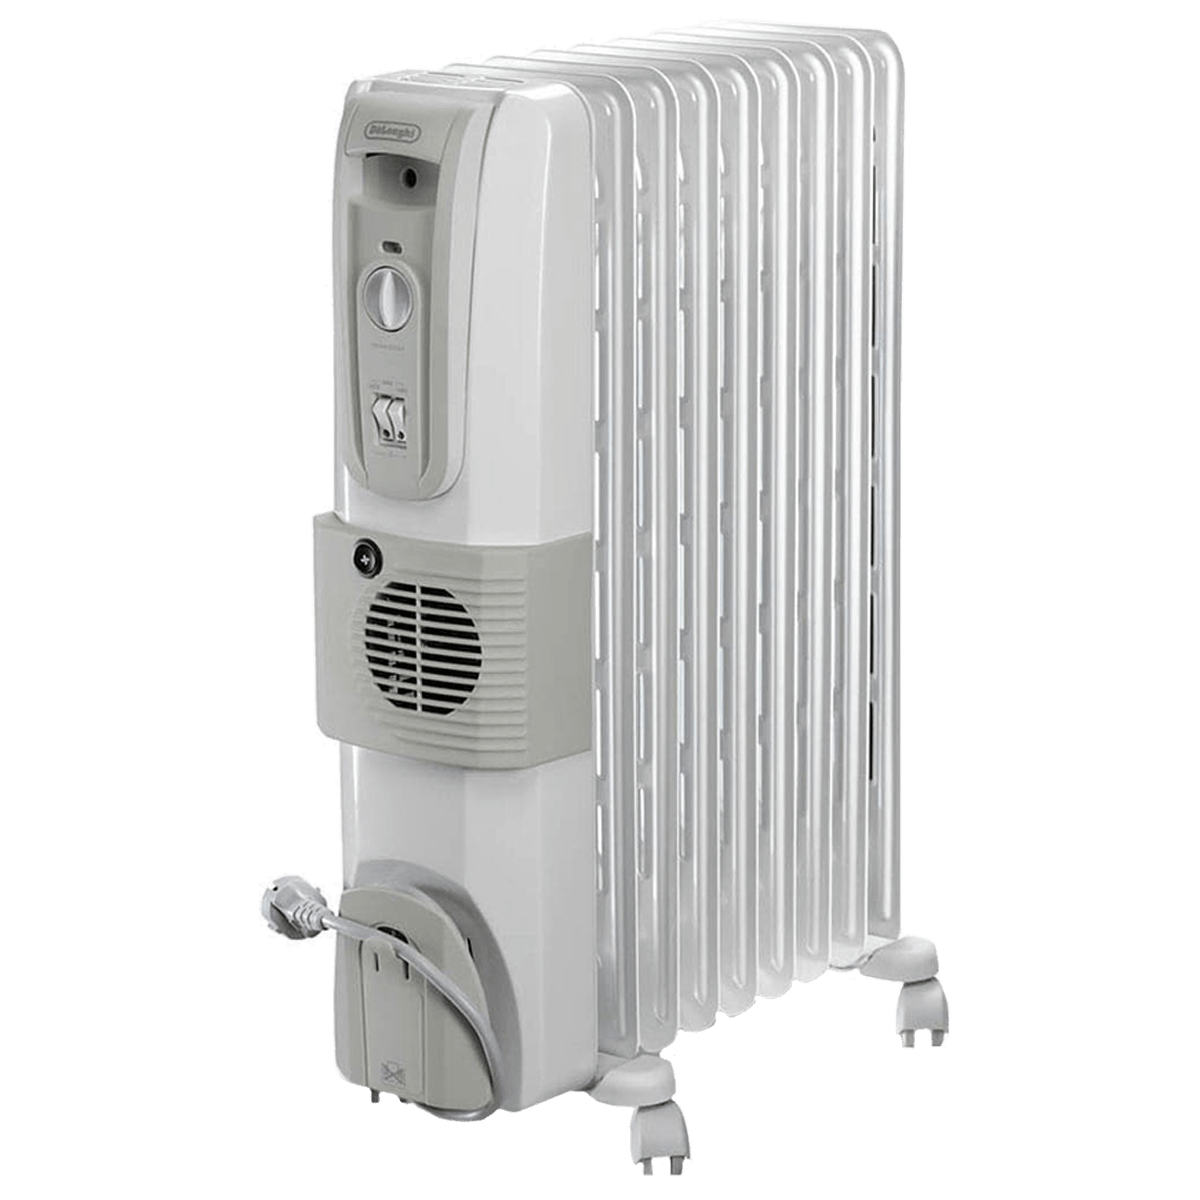 DeLonghi HOR 2500 Watts Fan Oil Filled Heater (Thermostat Control, KH770925V, White)